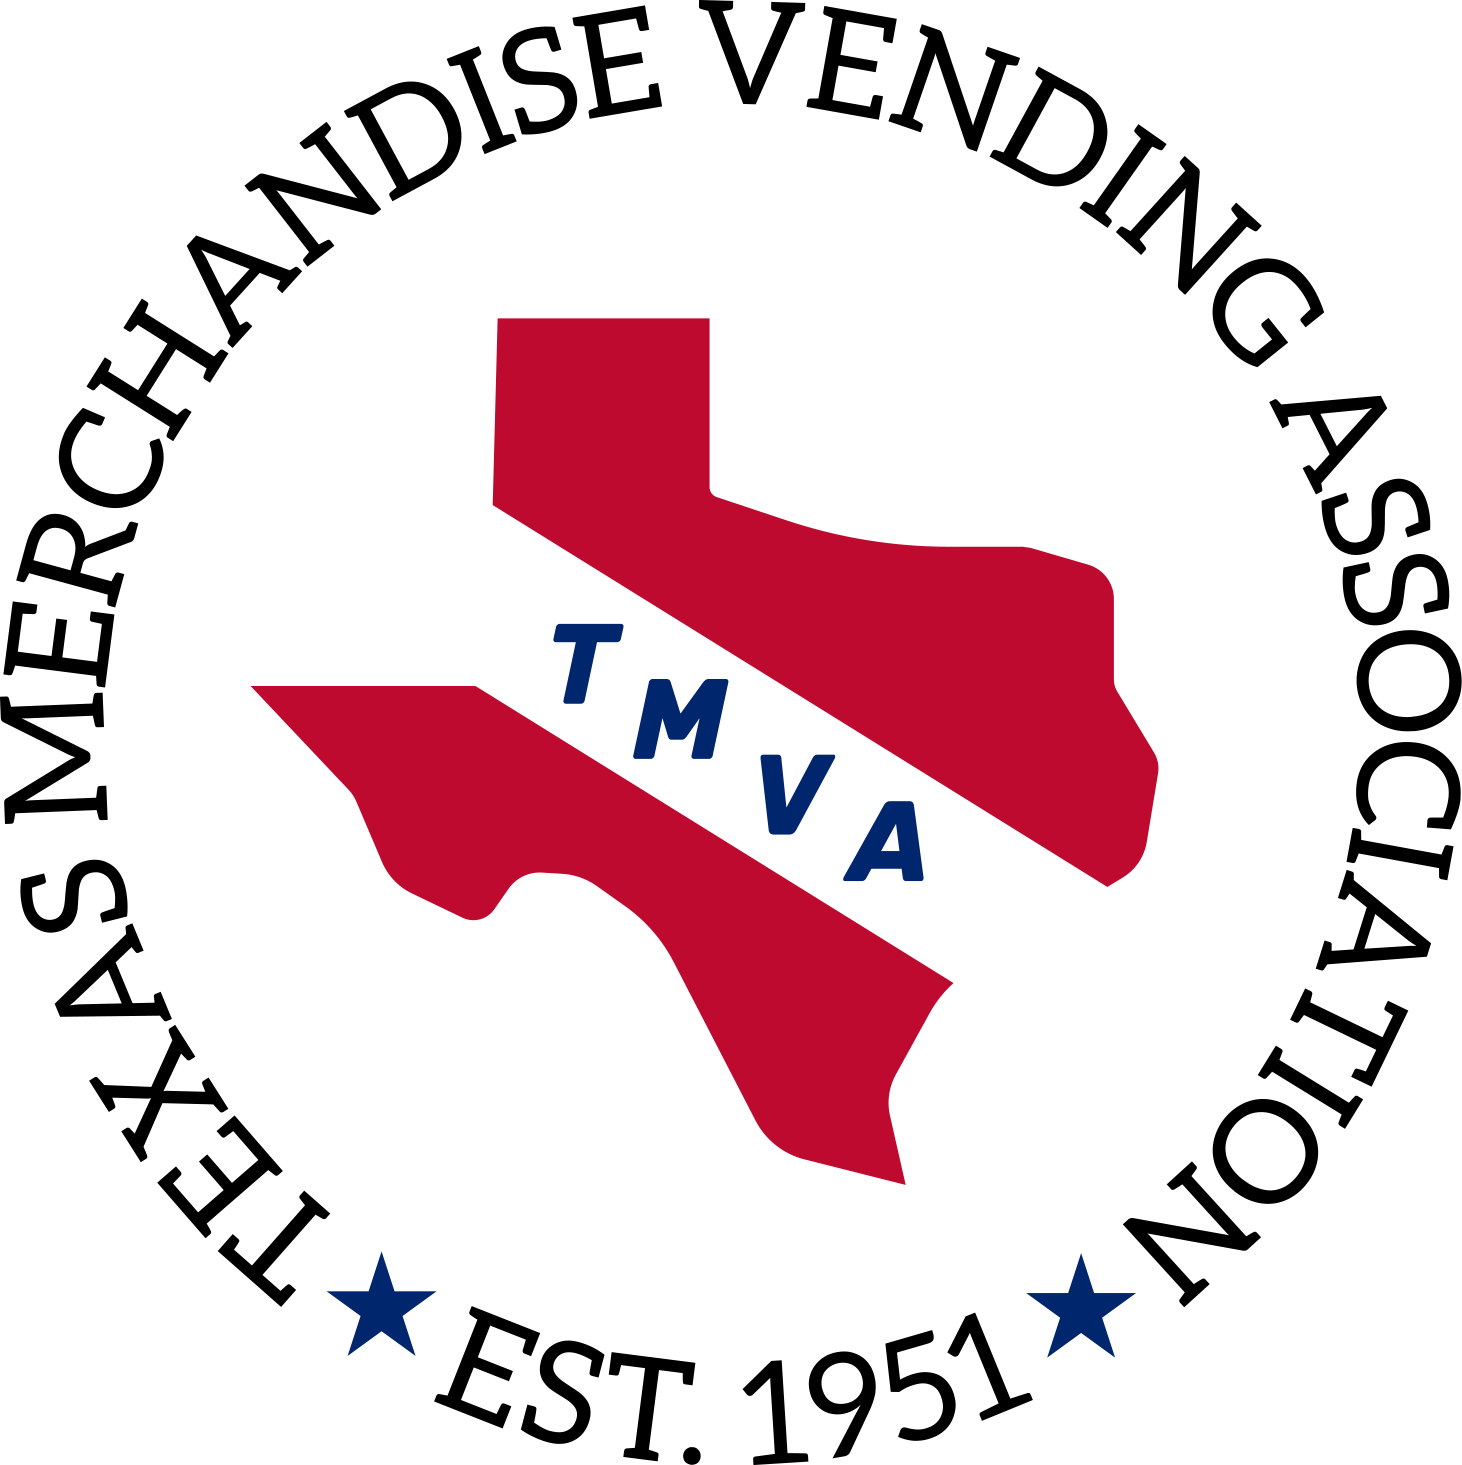 Texas Merchandise Vending Association